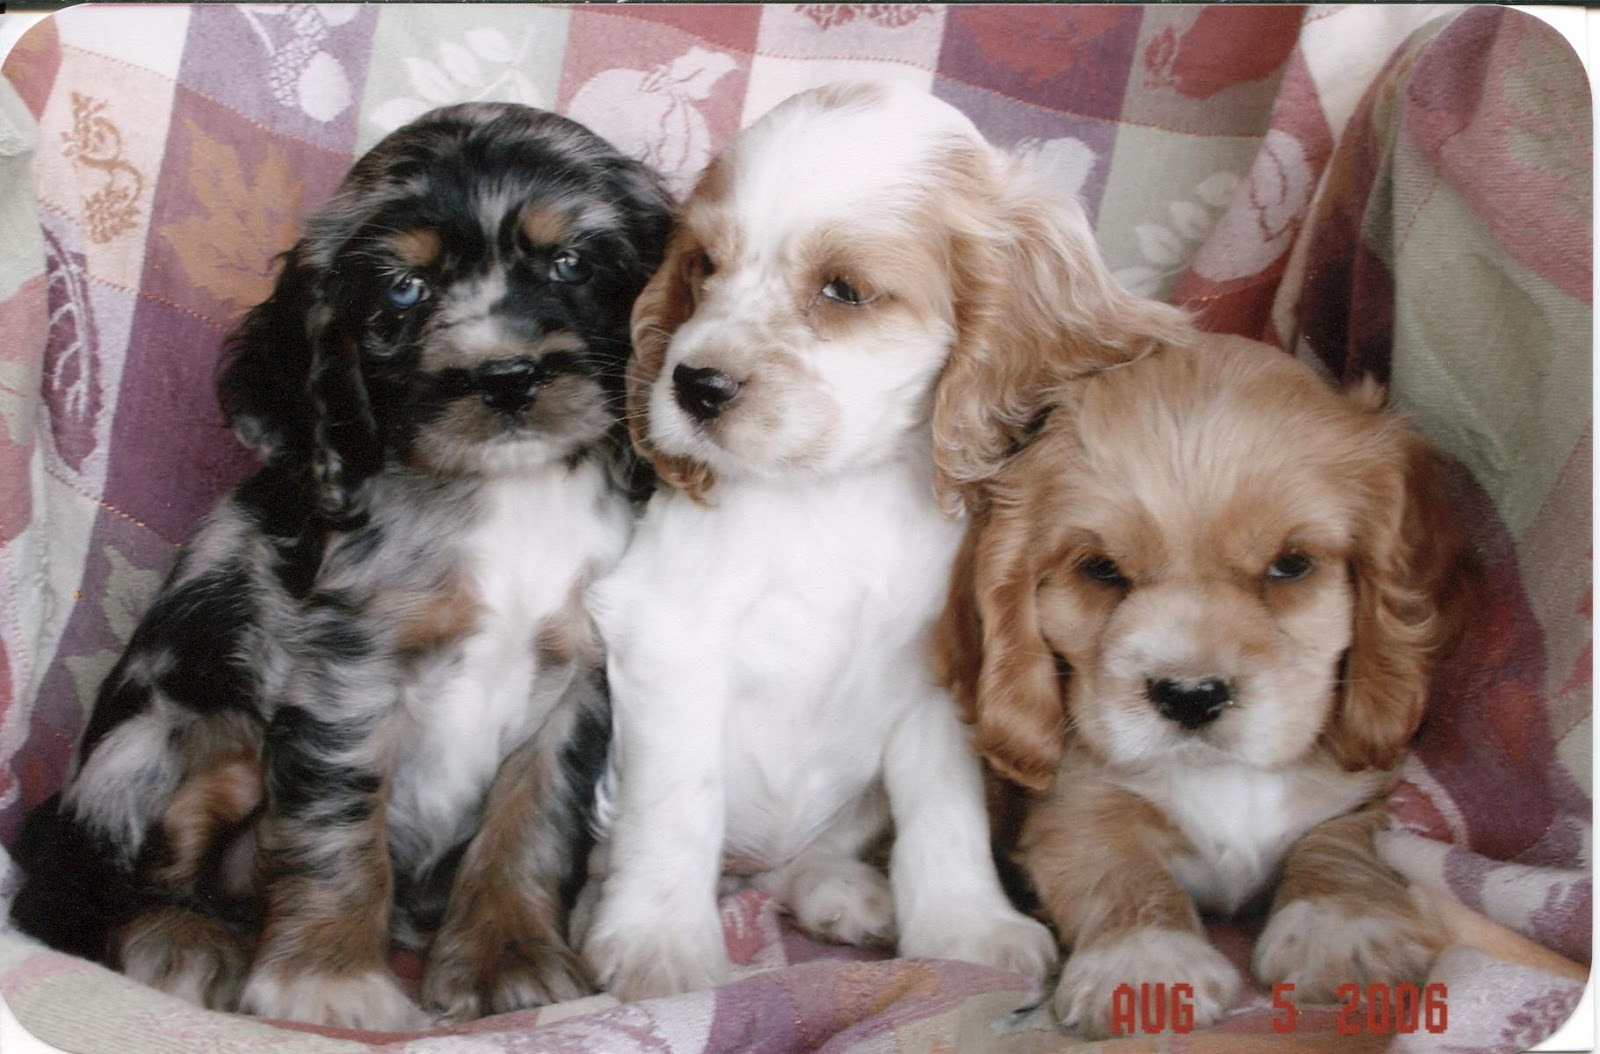 American cocker spaniel puppies - photo#16